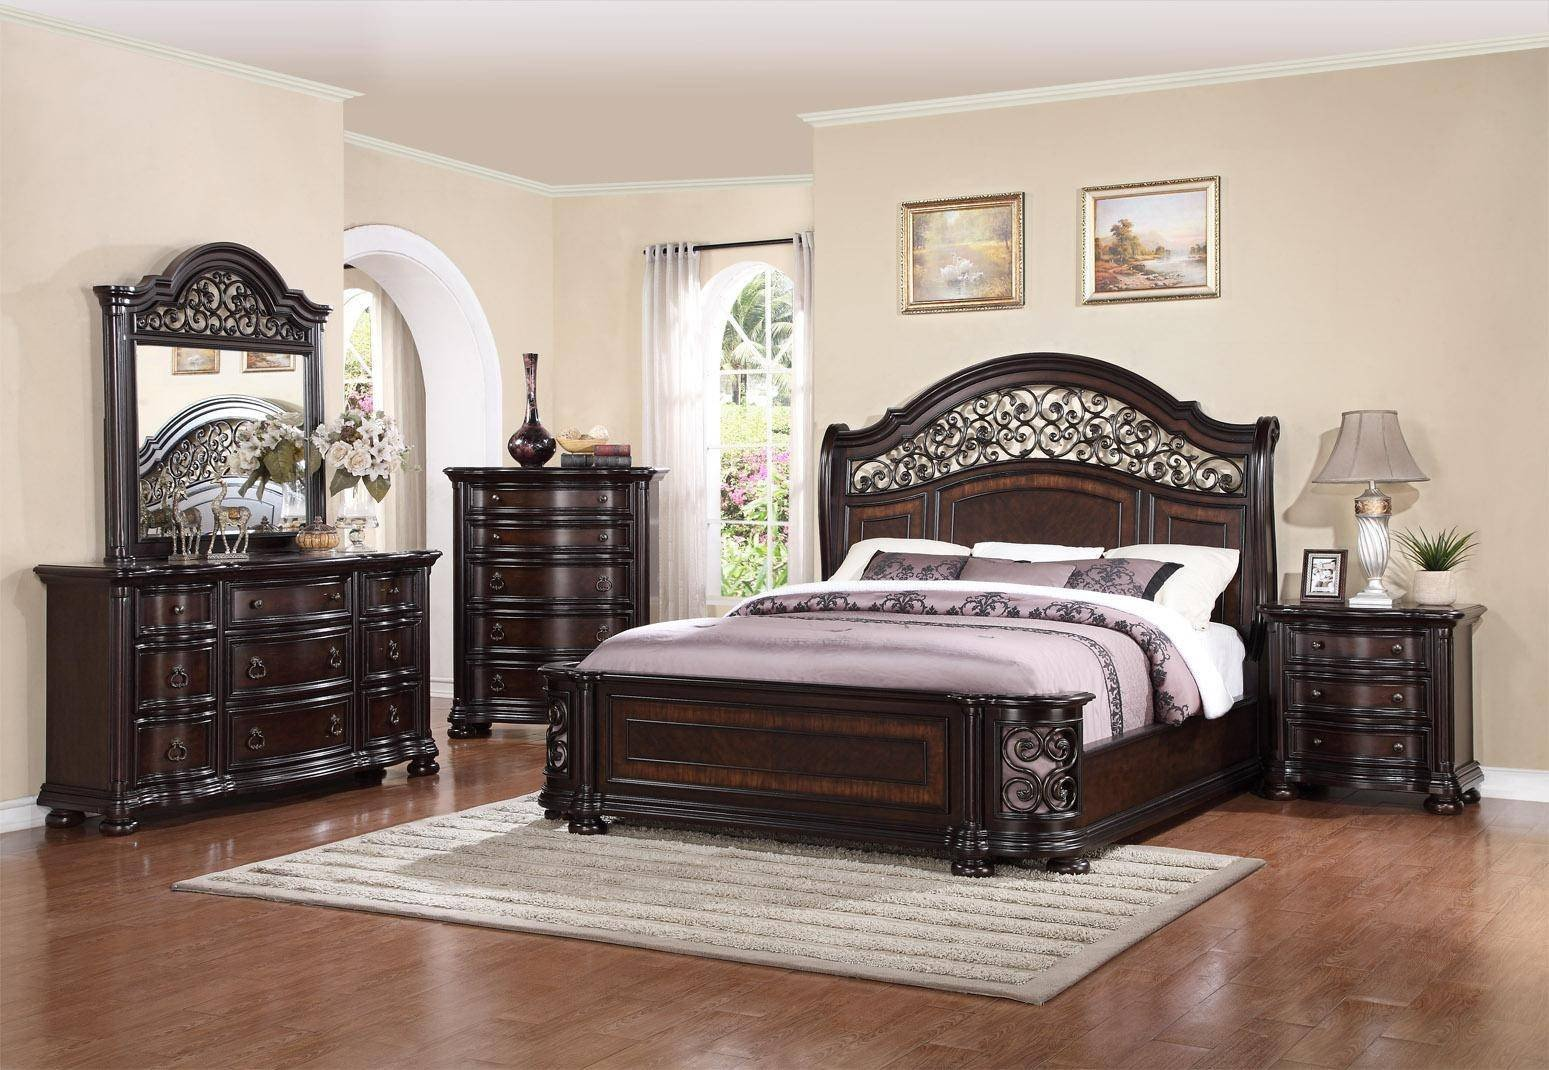 Full Size Bedroom Furniture Set Elegant Mcferran B366 Allison Espresso Finish solid Hardwood